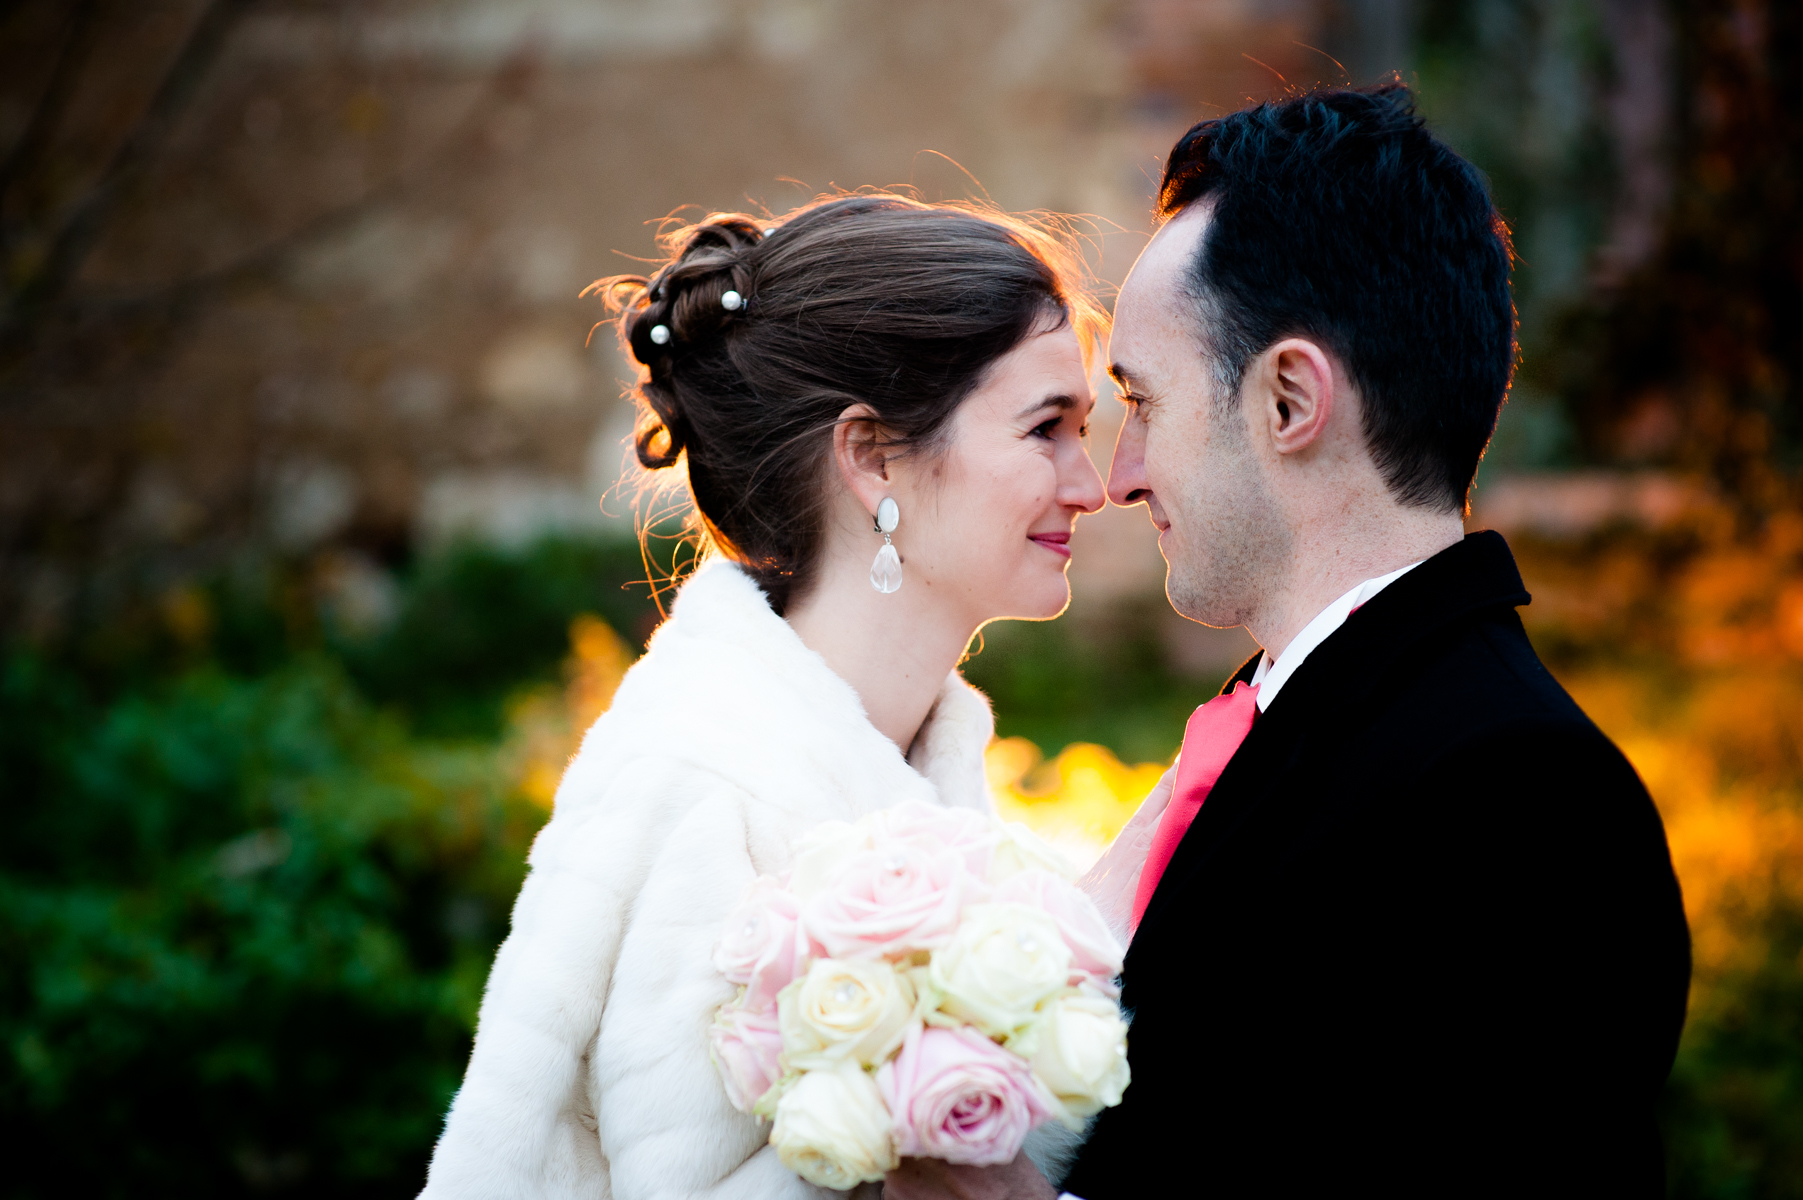 romance photo photographe mariage paris ile de france